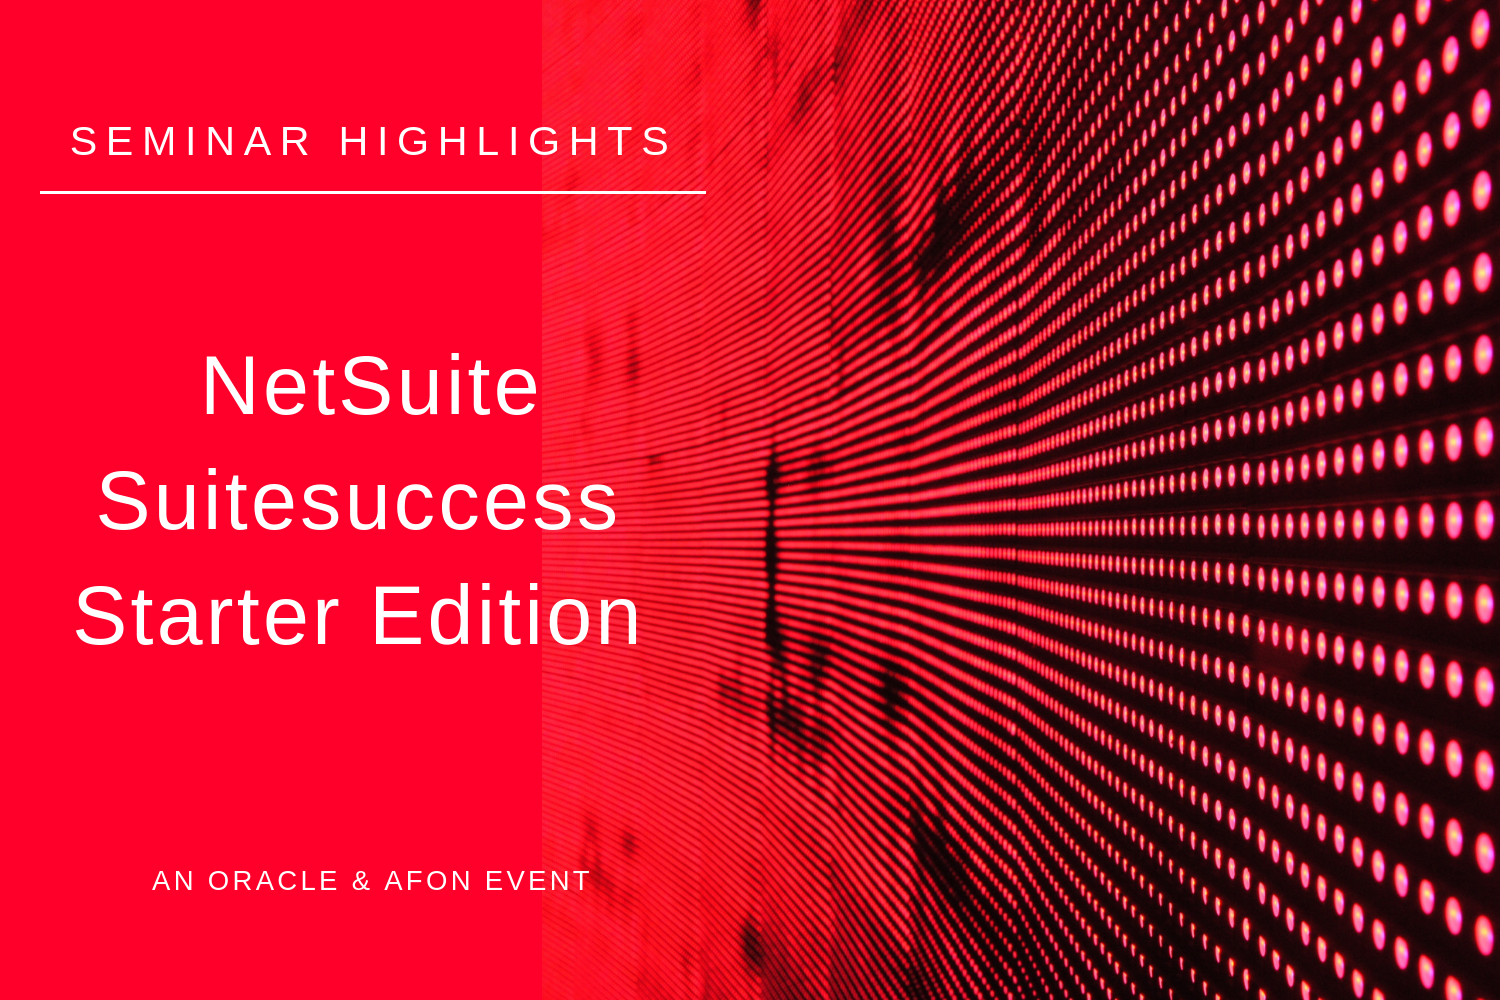 NetSuite Suitesuccess Starter Edition